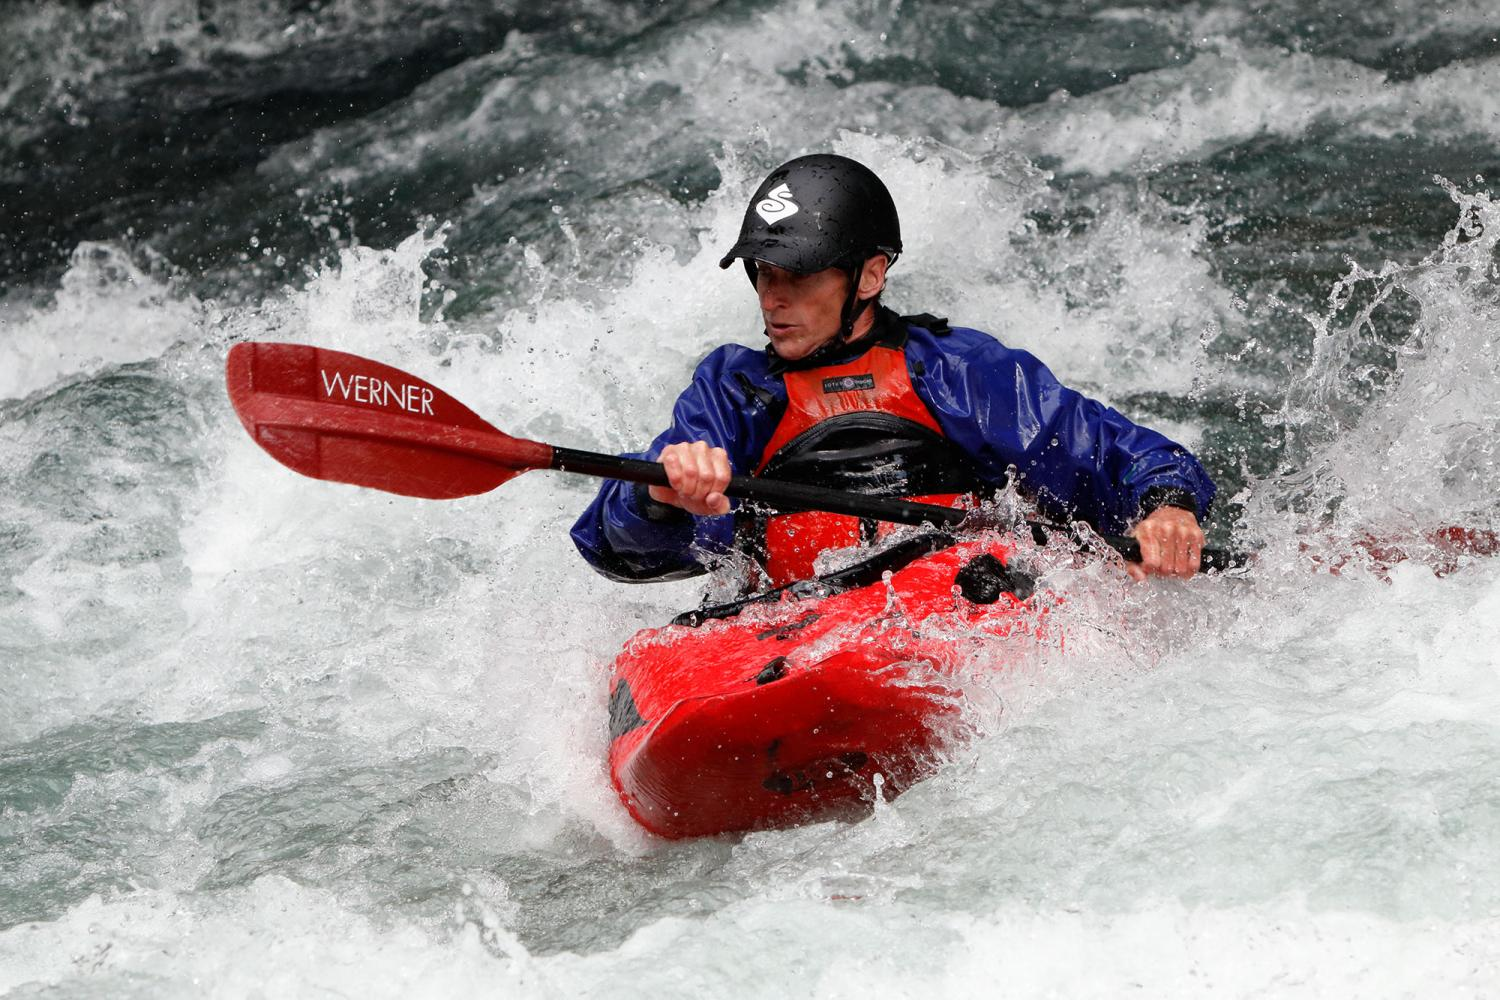 Man in red kayak paddling through white water currents, photographed with the Canon EF 70-300mm f/4-5.6 IS II USM lens